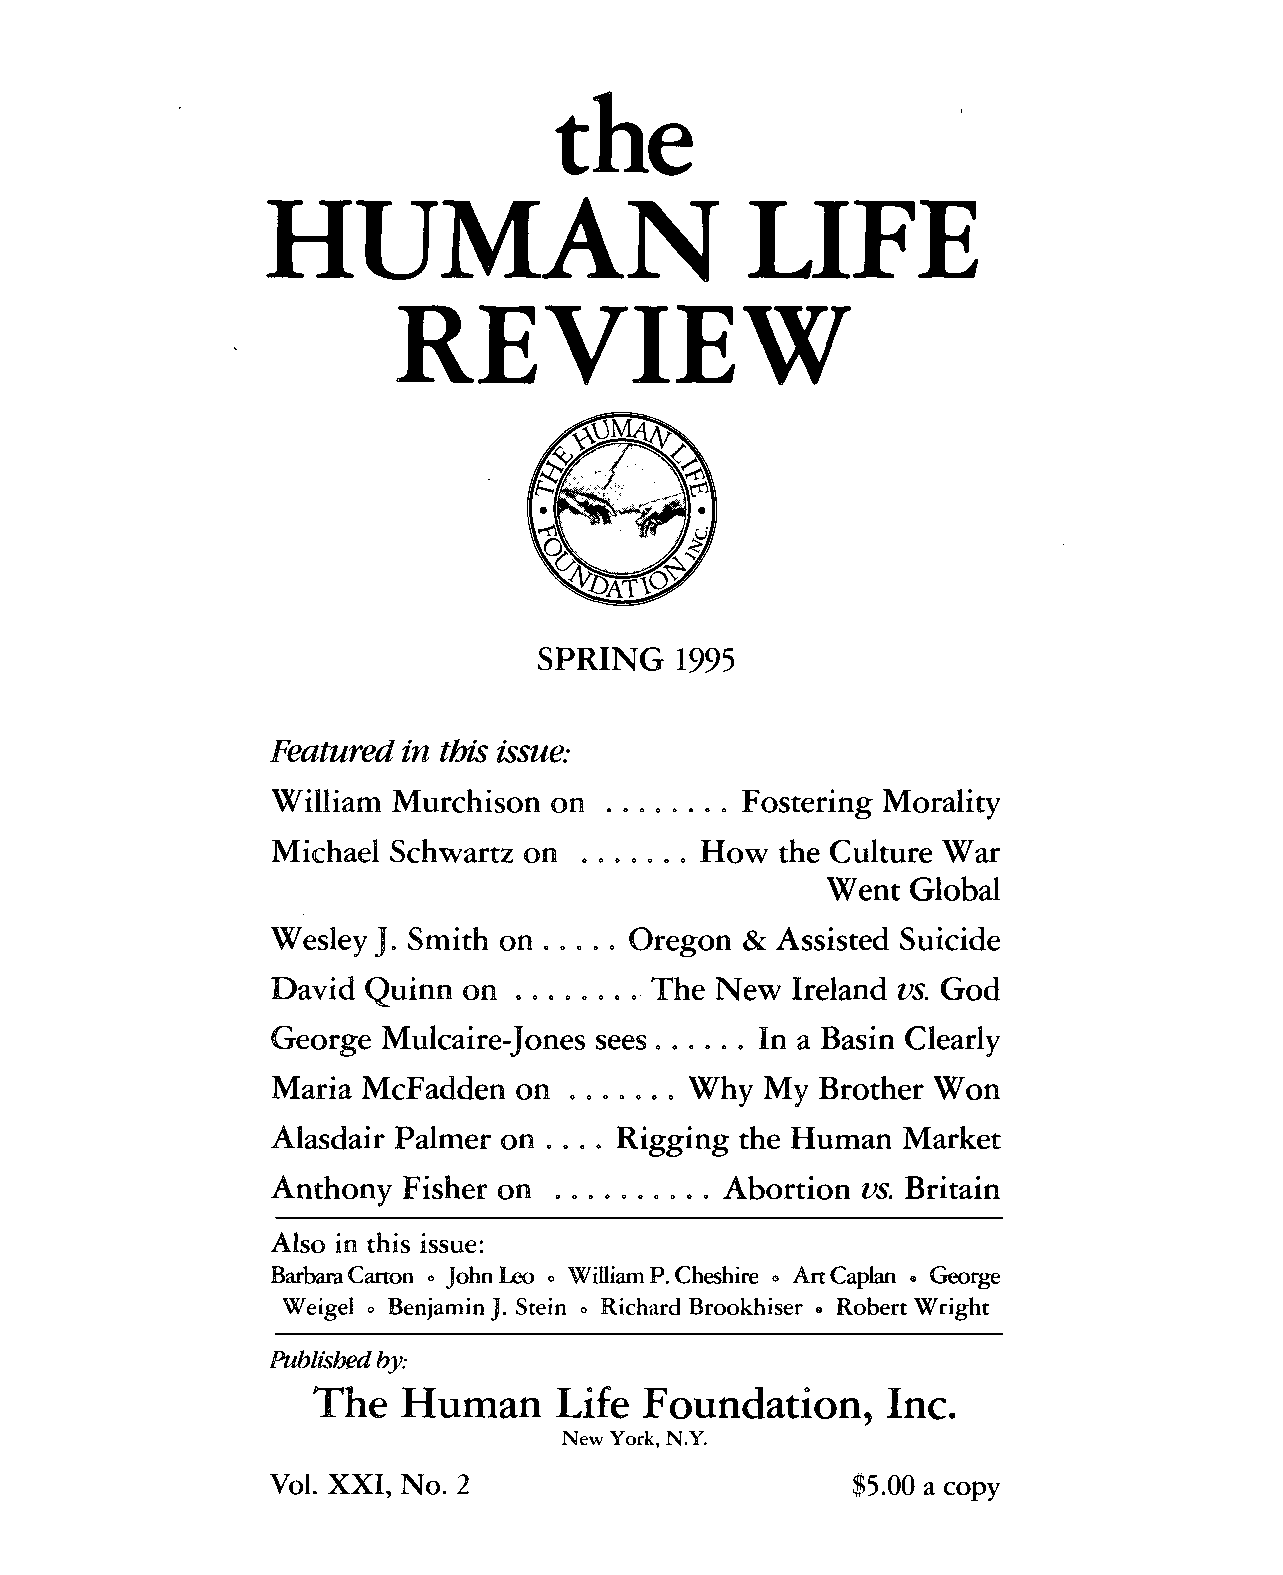 bcdabc406ed69 The Human Life Review Spring 1995 - The Human Life Review